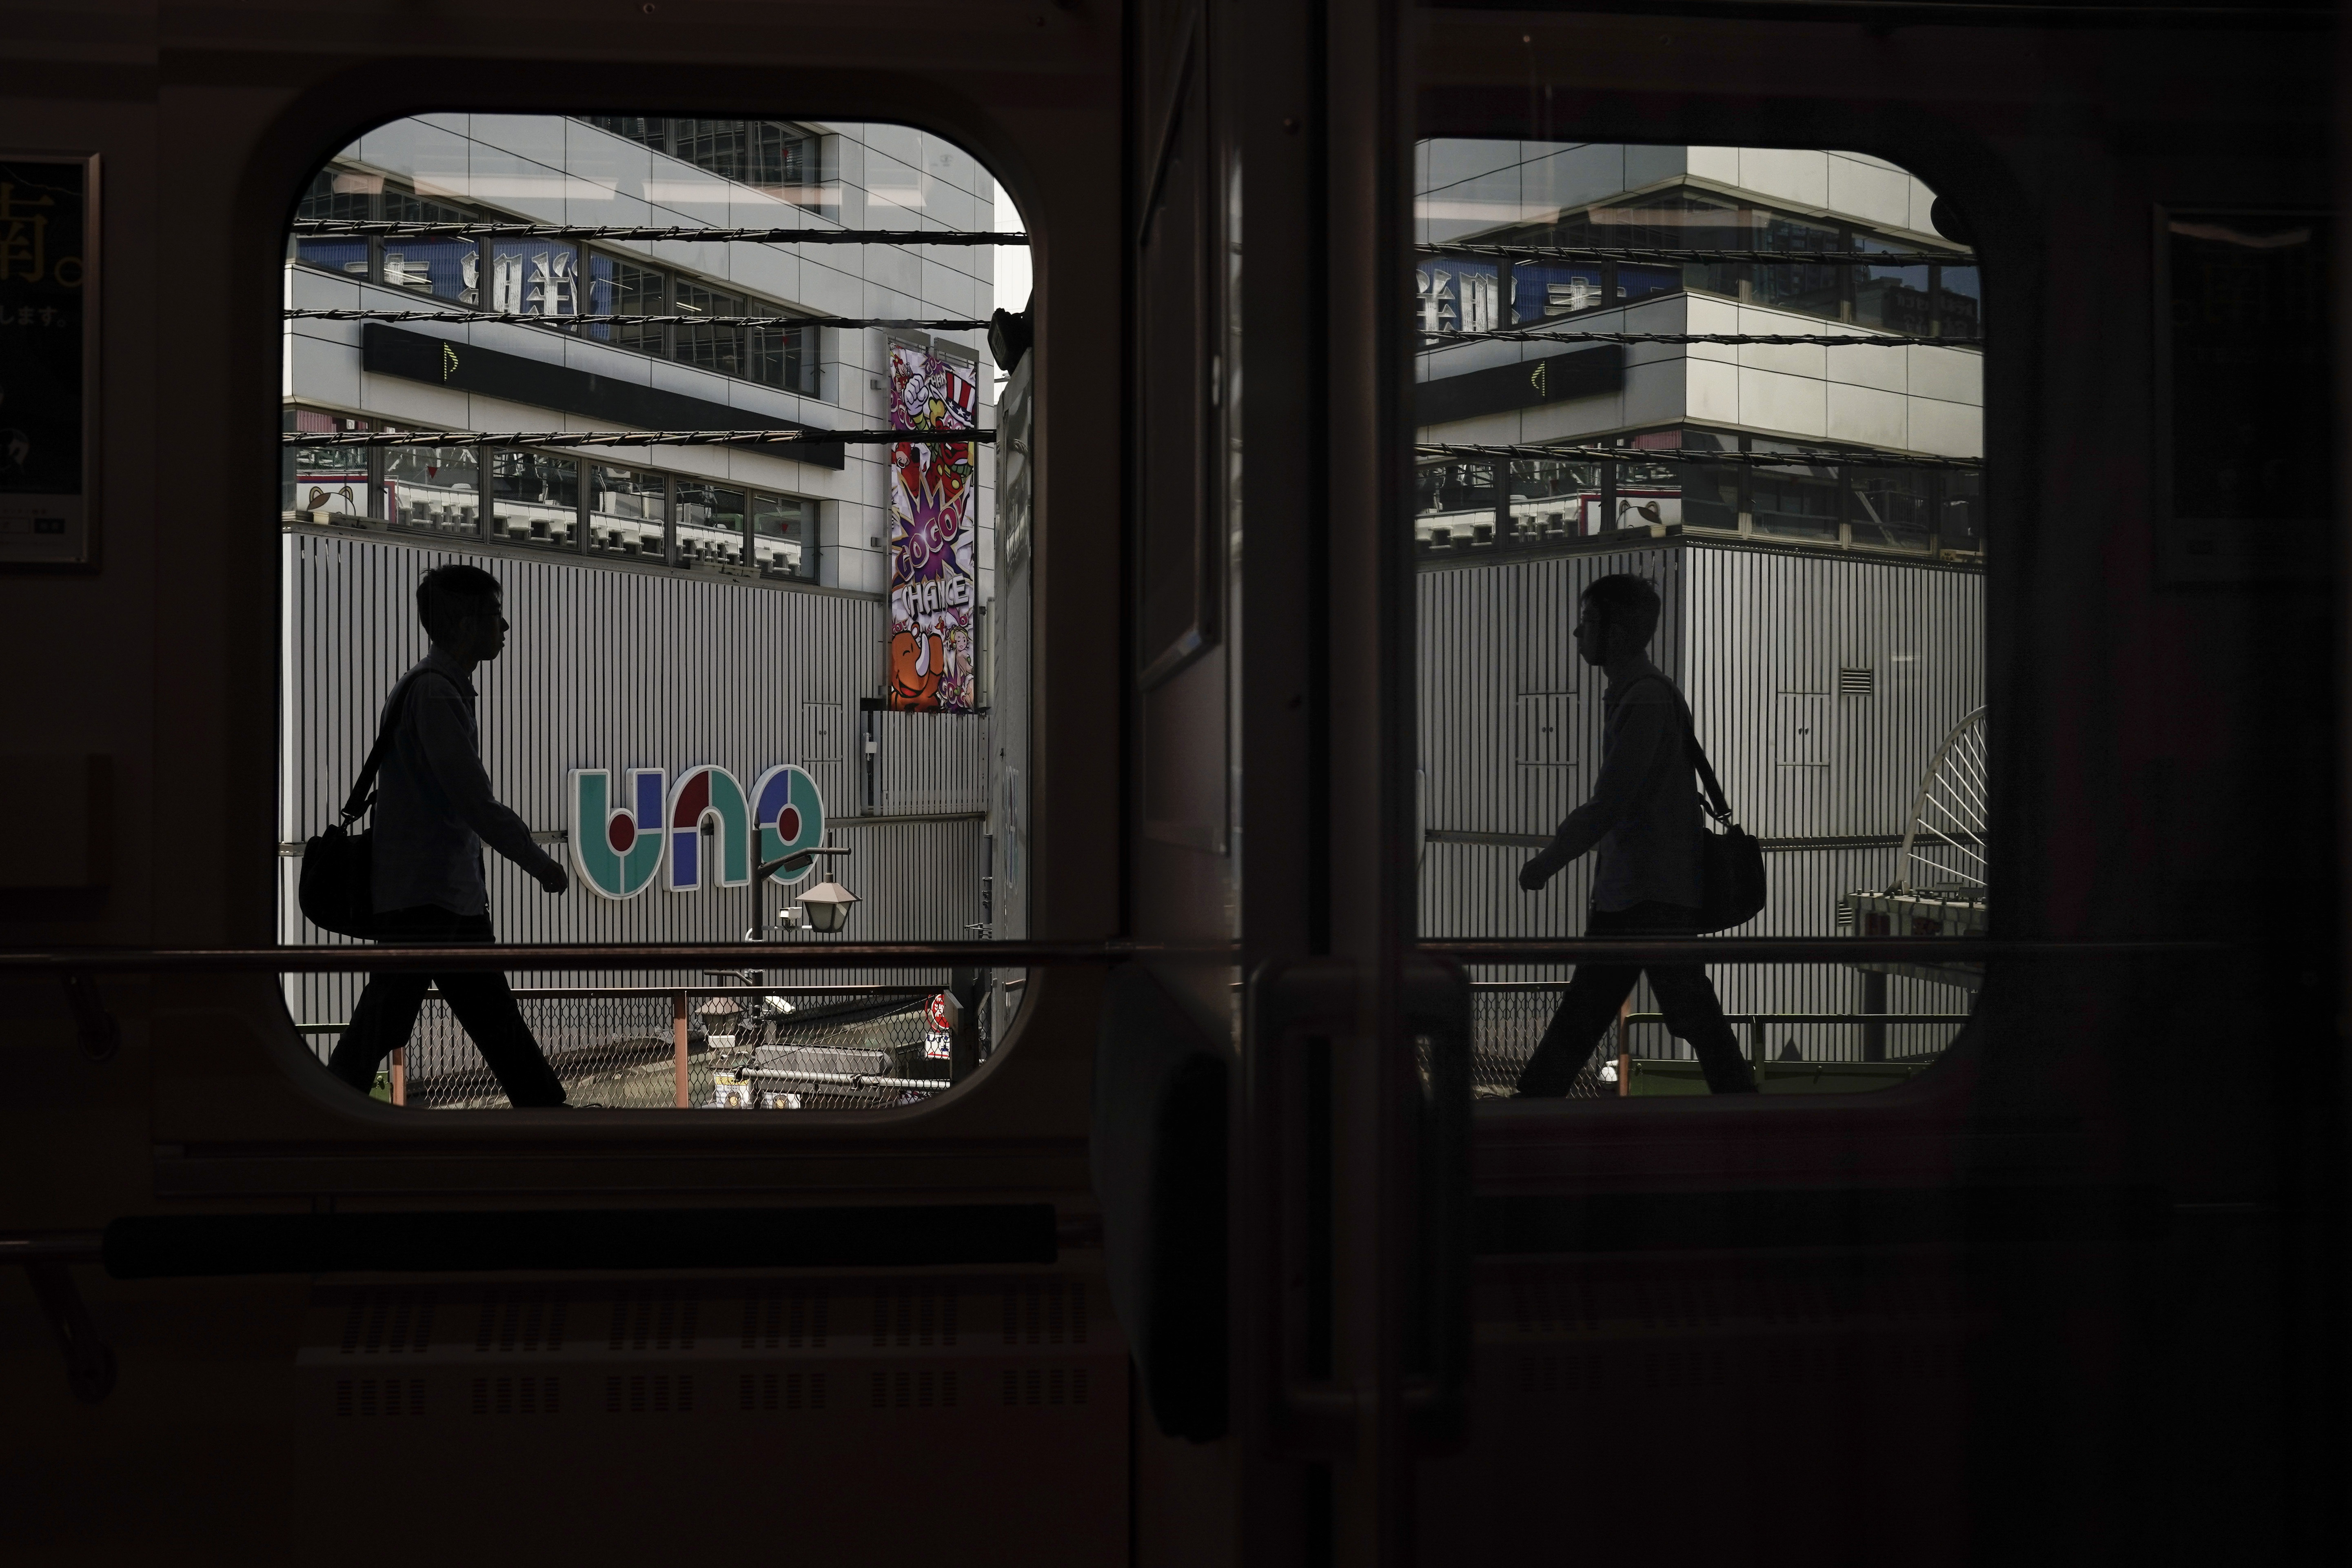 In this May 22, 2019, photo, a commuter is reflected in the window of a Yamanote Line train as he gets off at Shimbashi Station in Tokyo. Running above ground, views from wide windows on the train range from high-rises to local shopping arcade as the train covers different parts of the city. The line, according to company statistics, moves roughly 3 to 4 million people daily, more than the entire population of Jamaica. (AP Photo/Jae C. Hong)